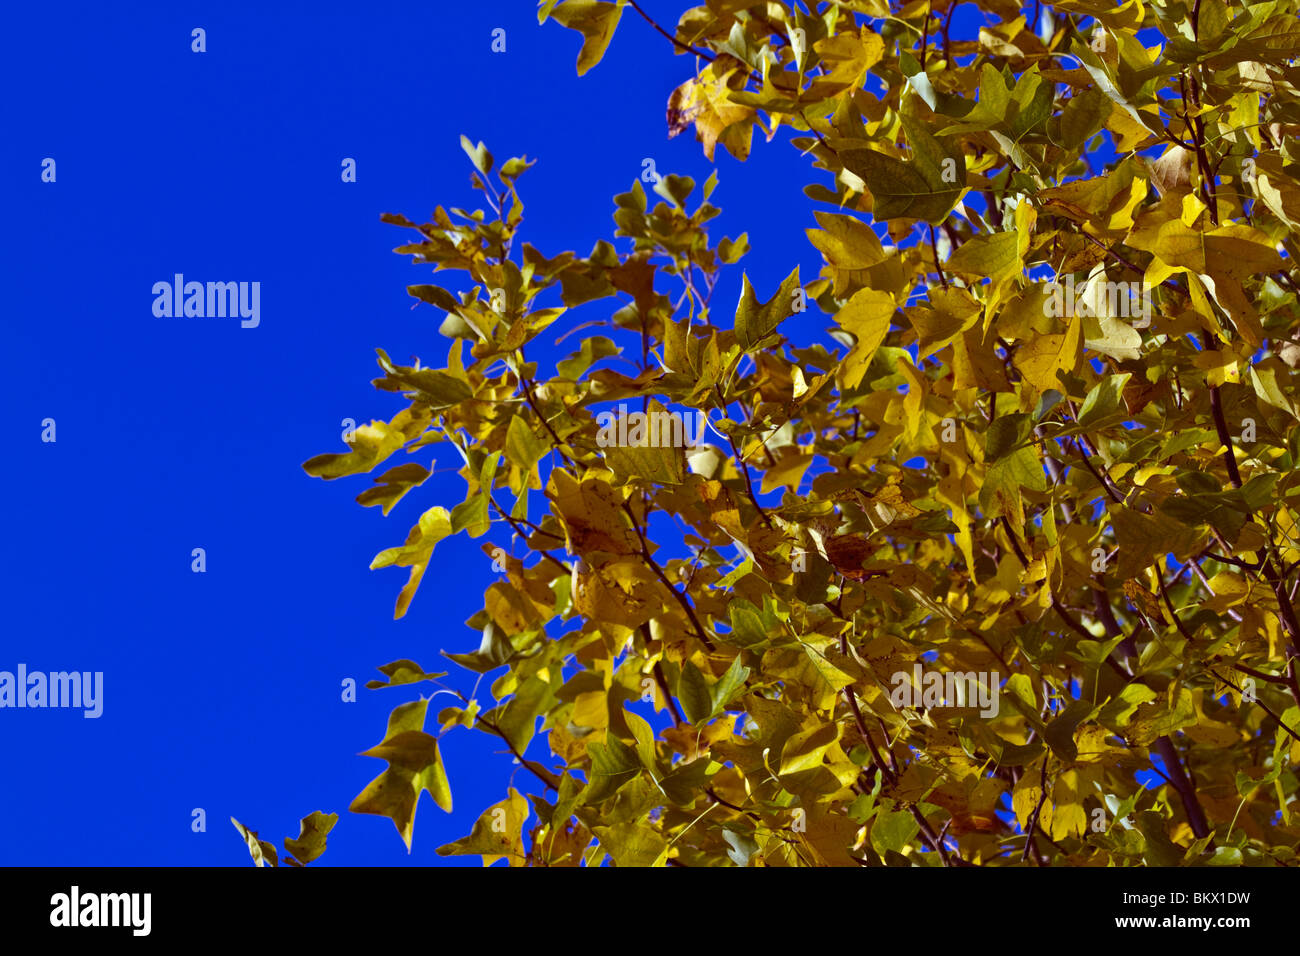 Colorful autumn leaves against a blue sky - Stock Image